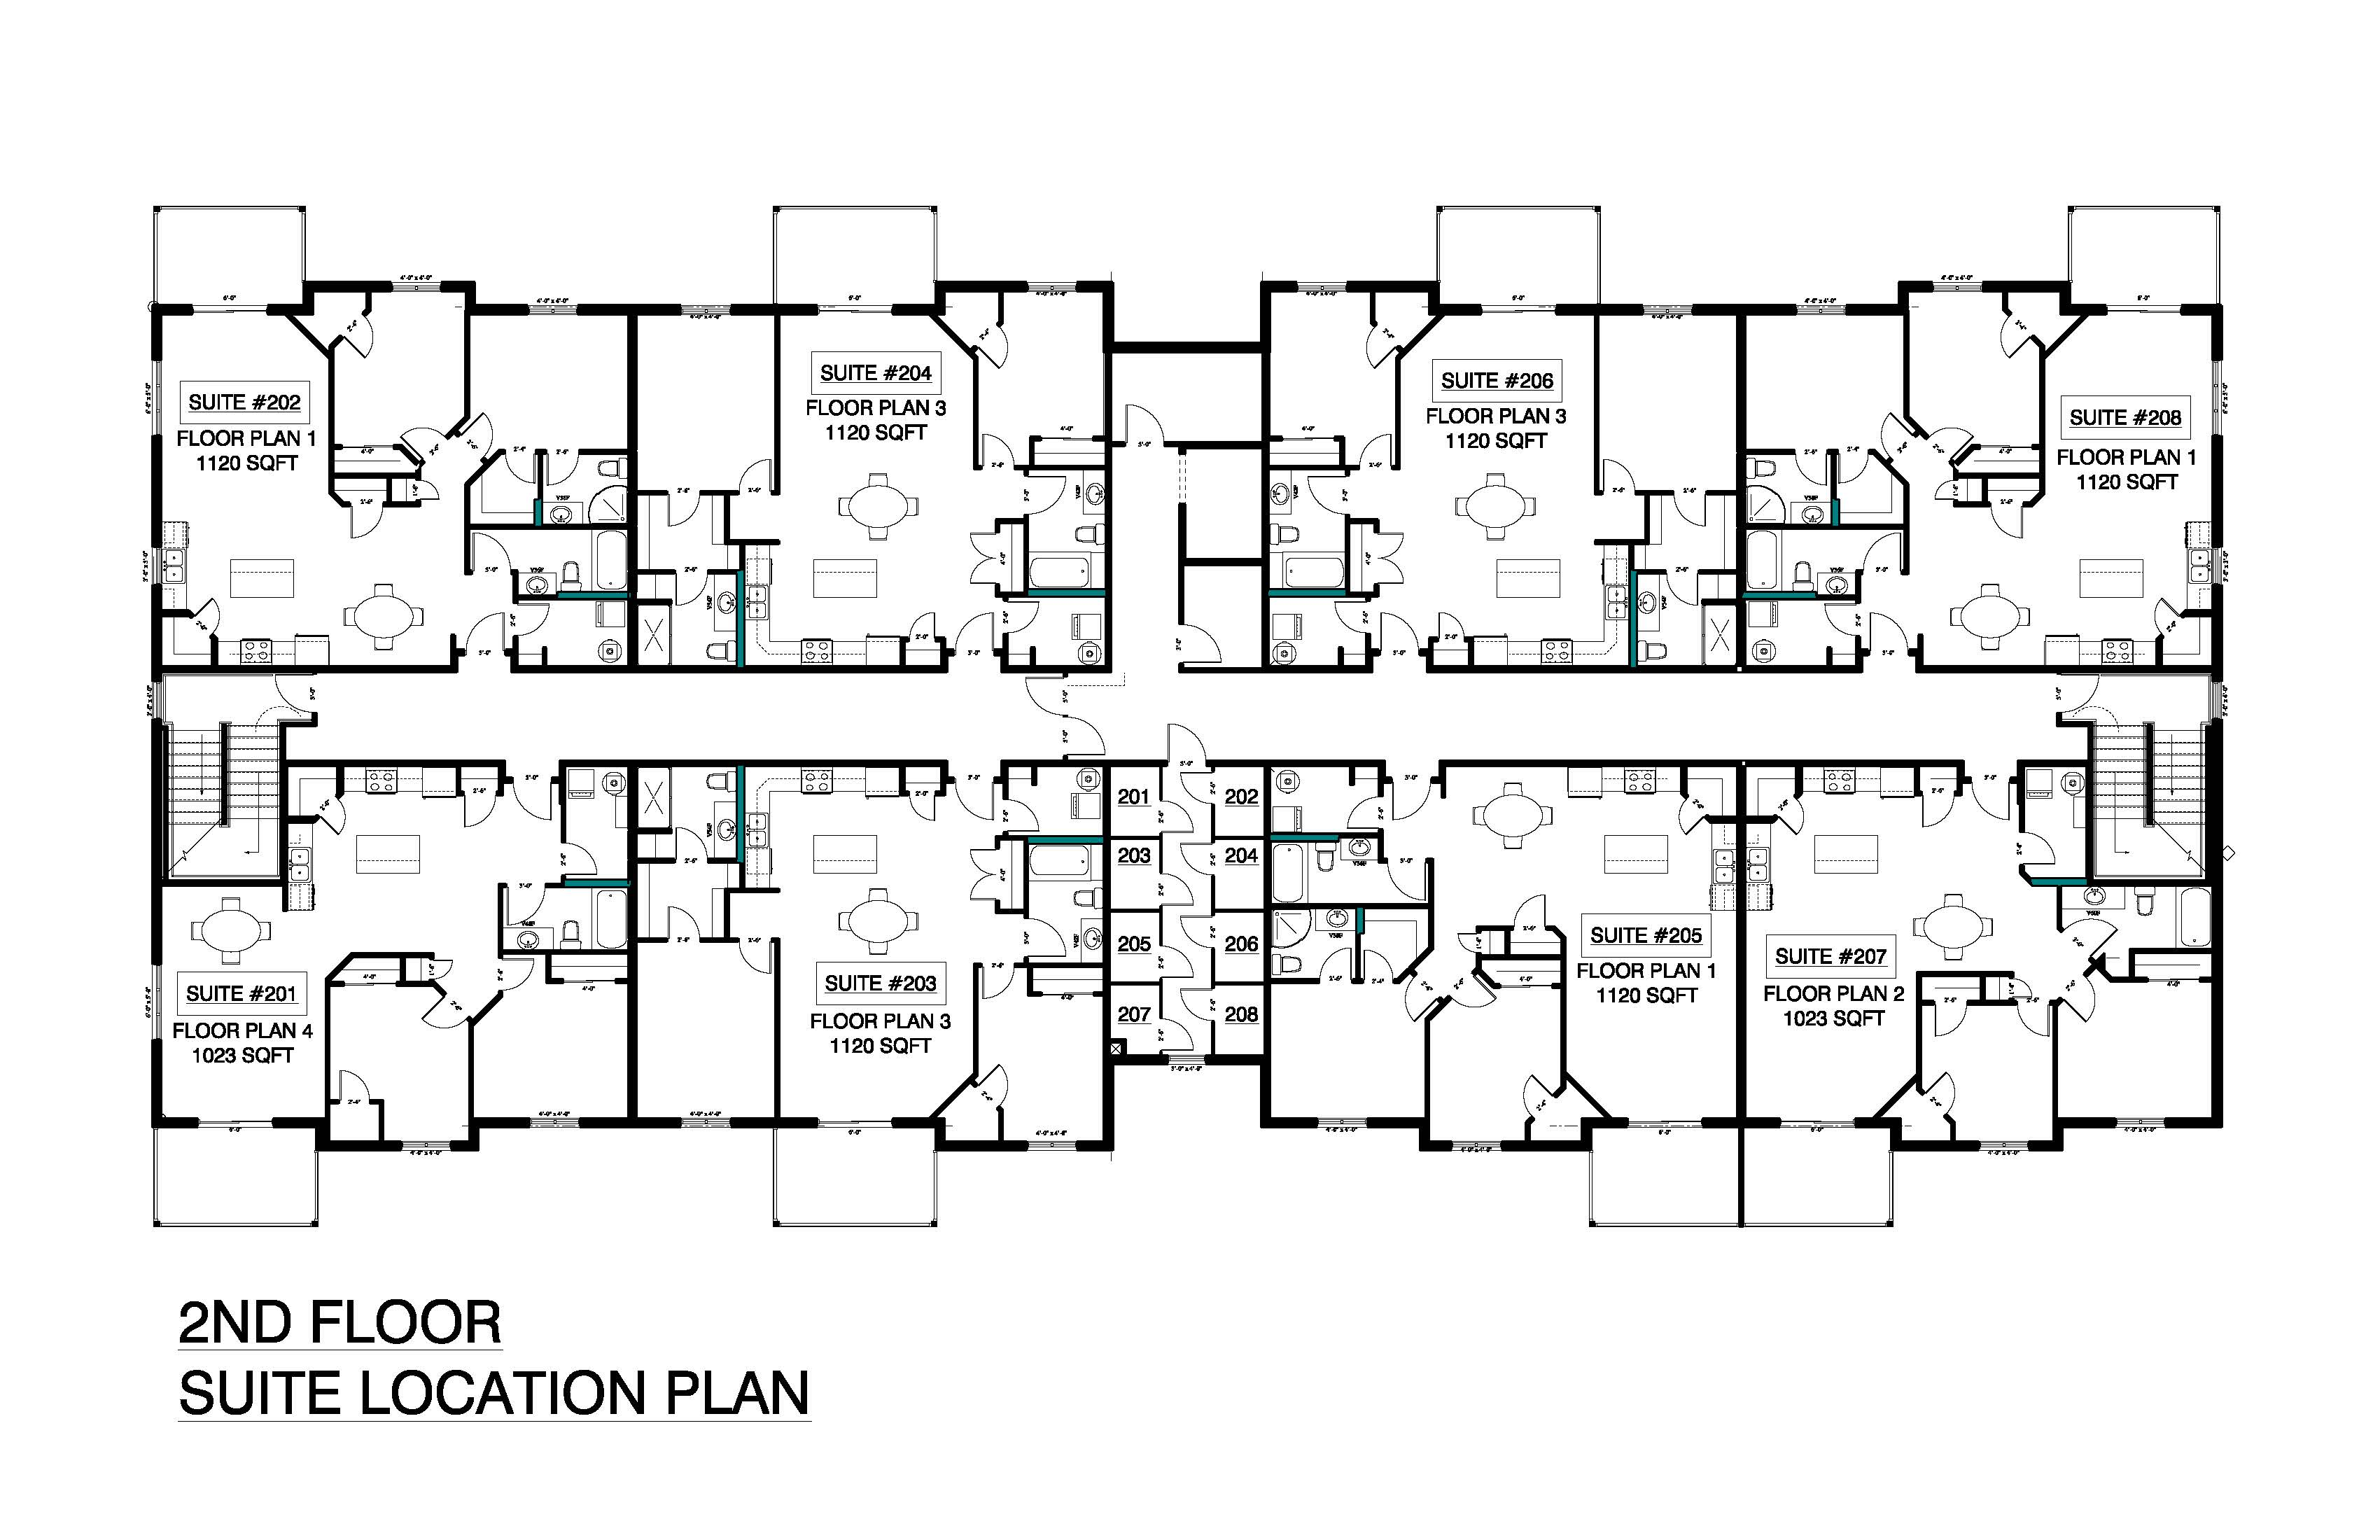 2nd Floor Suite Location Plan